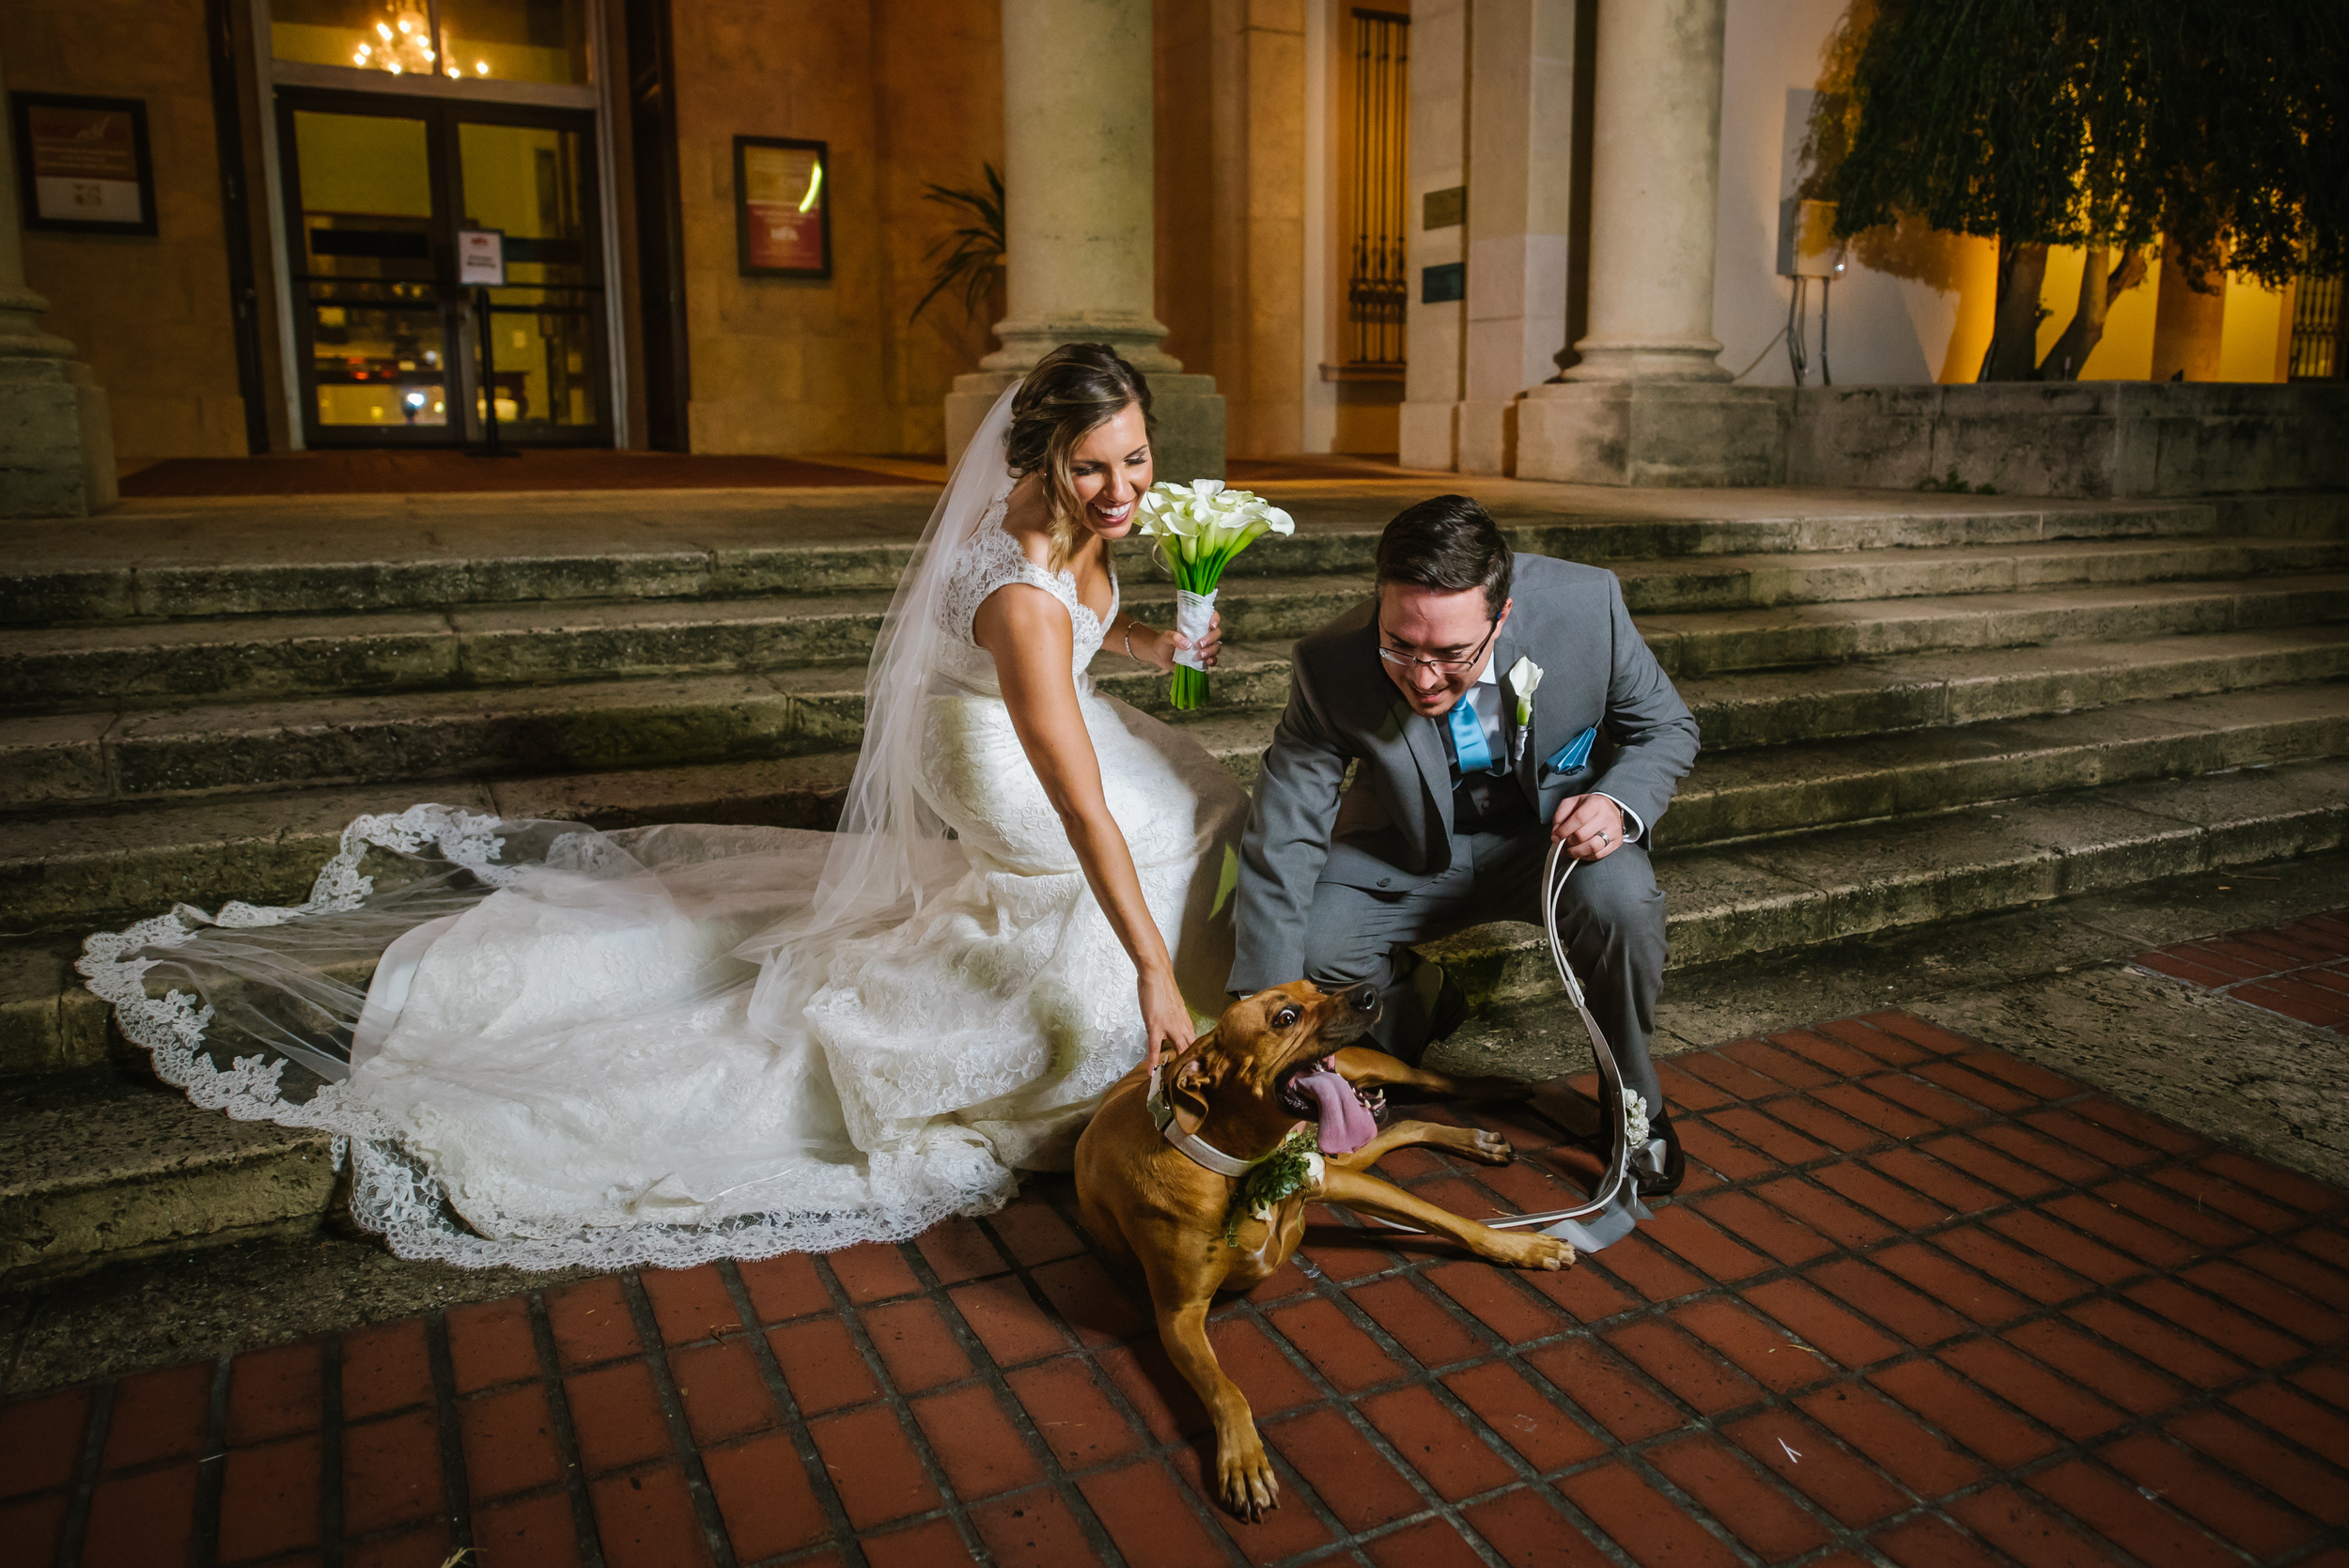 Mark and Jo had an amazing wedding day complete with their fur baby Phoebe! Her face, yep, sums it up.